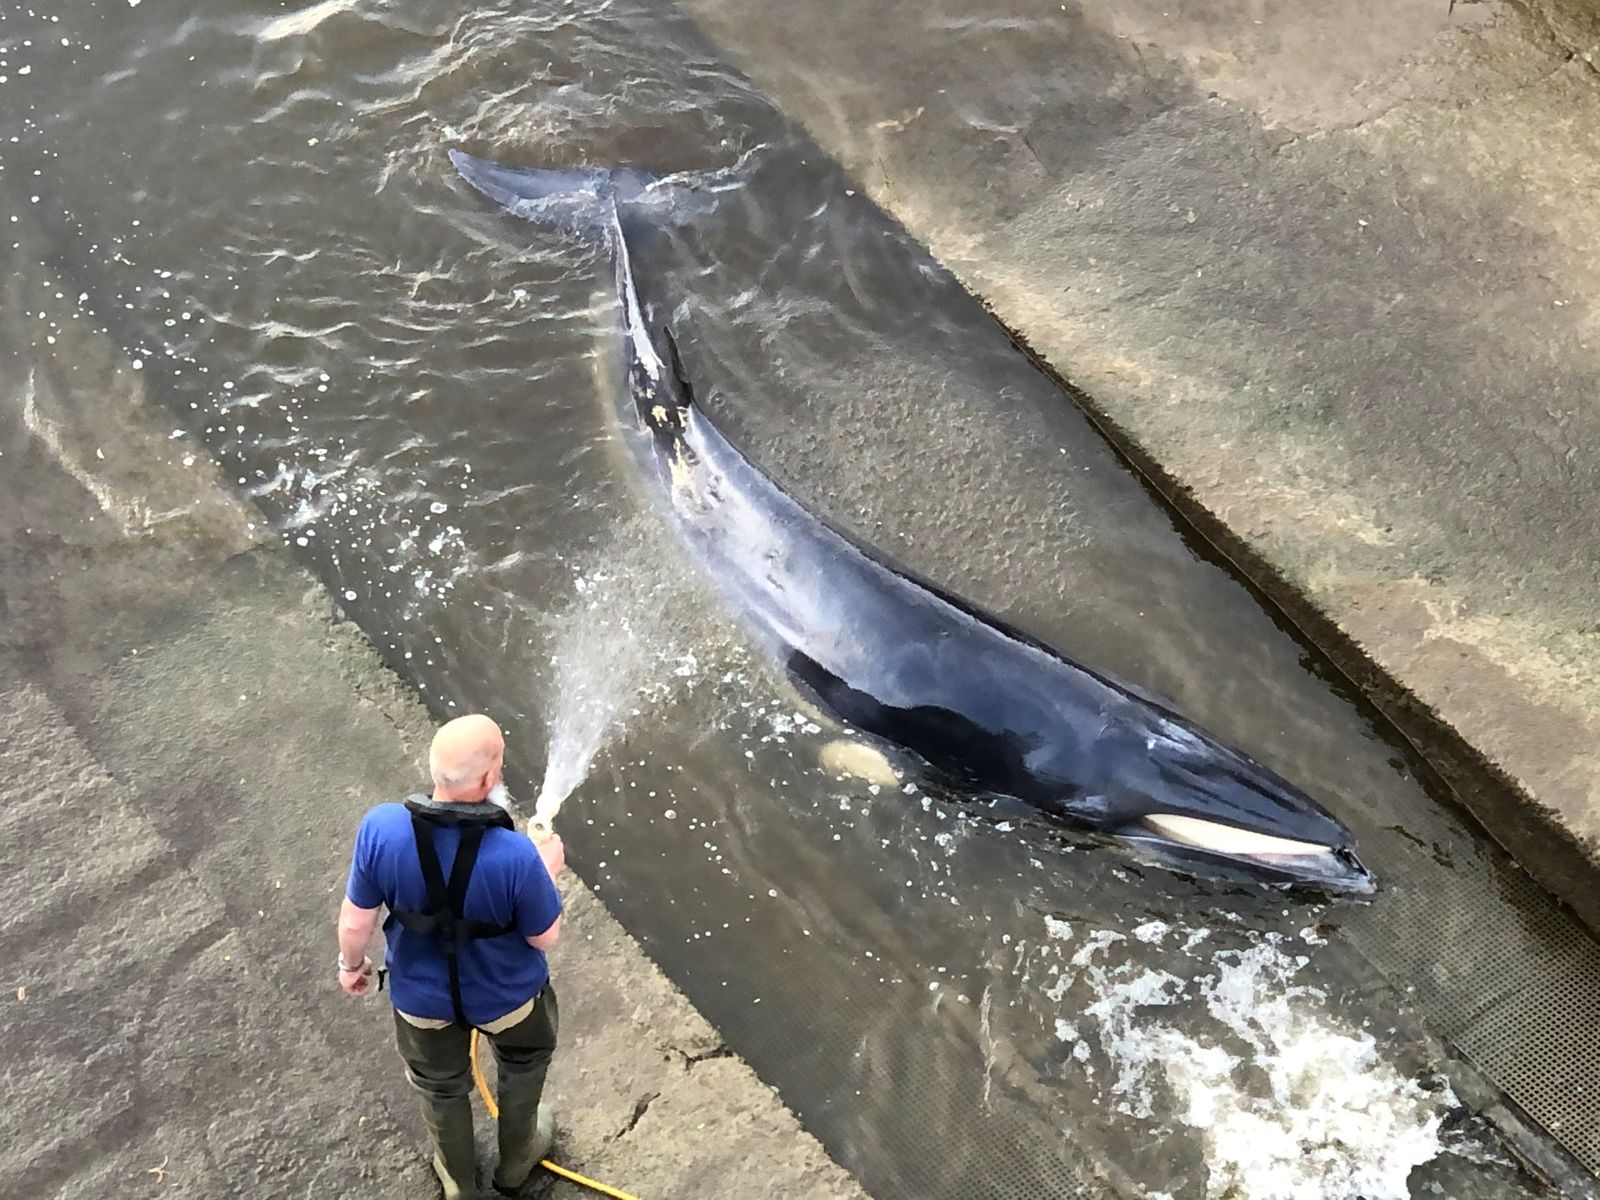 A small whale stranded in the River Thames is seen in this picture obtained from social media in London, Britain